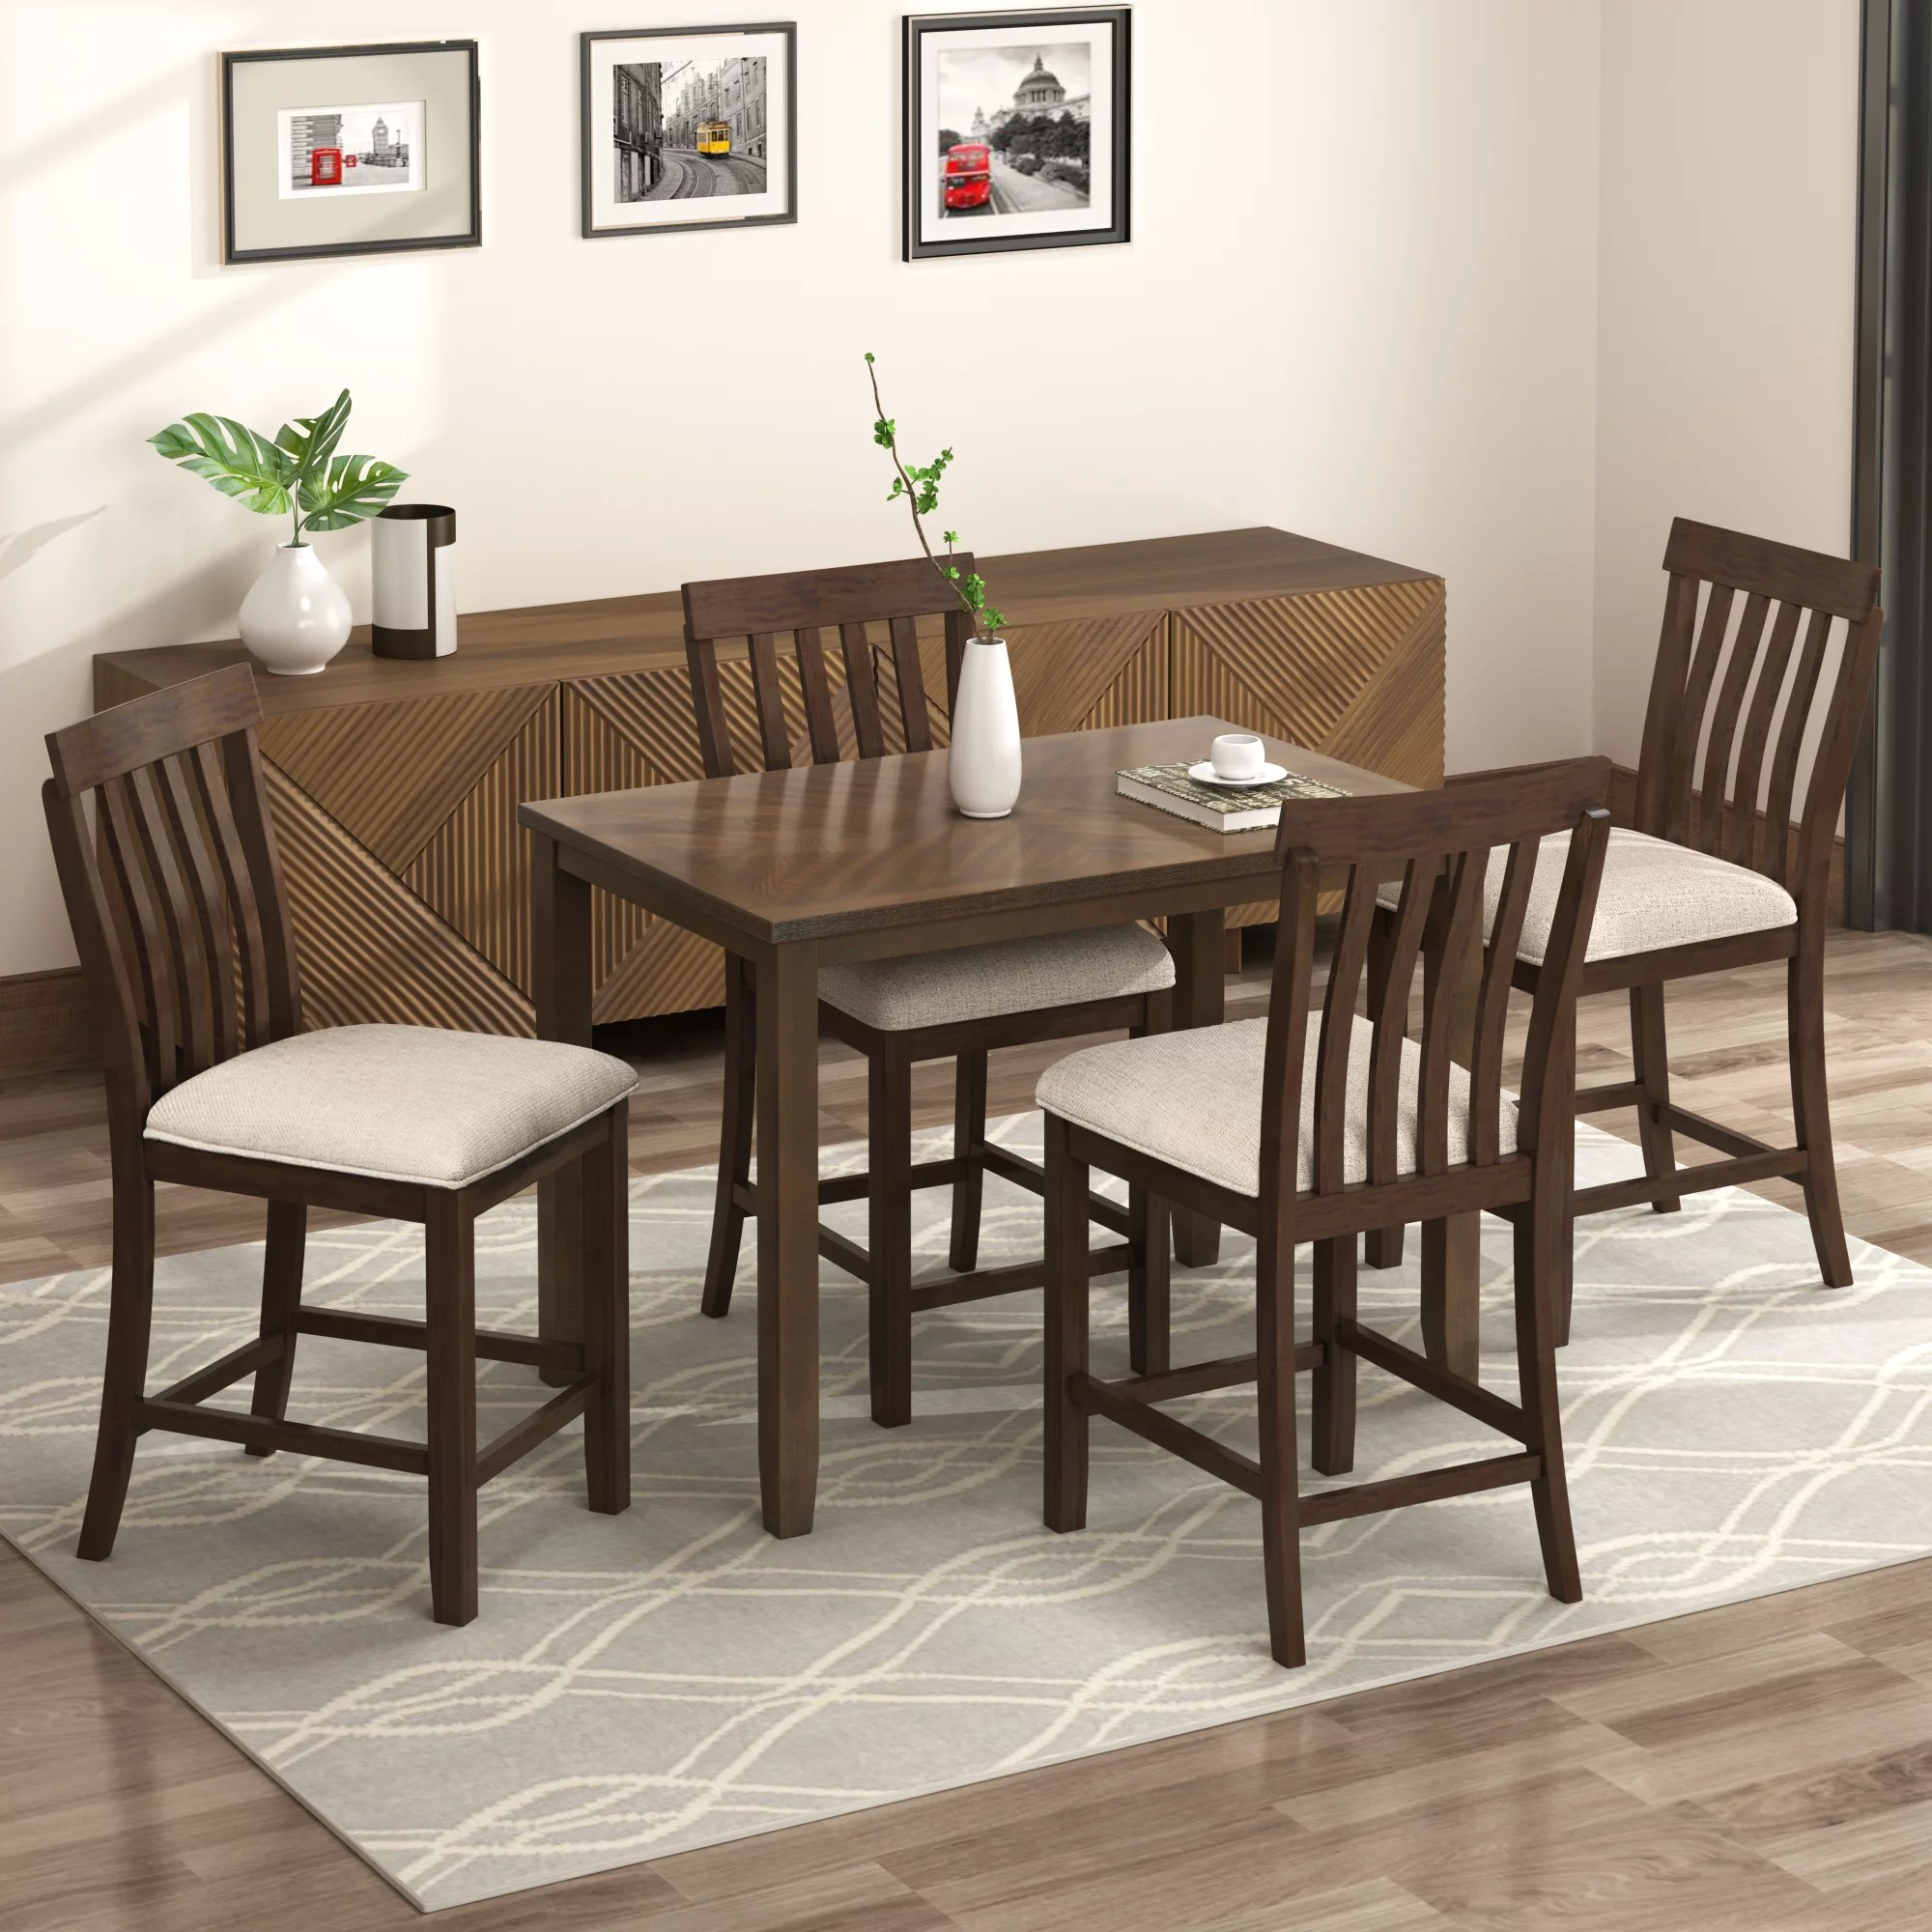 clearance kitchen dining table set 5 piece counter on dining room sets on clearance id=13806